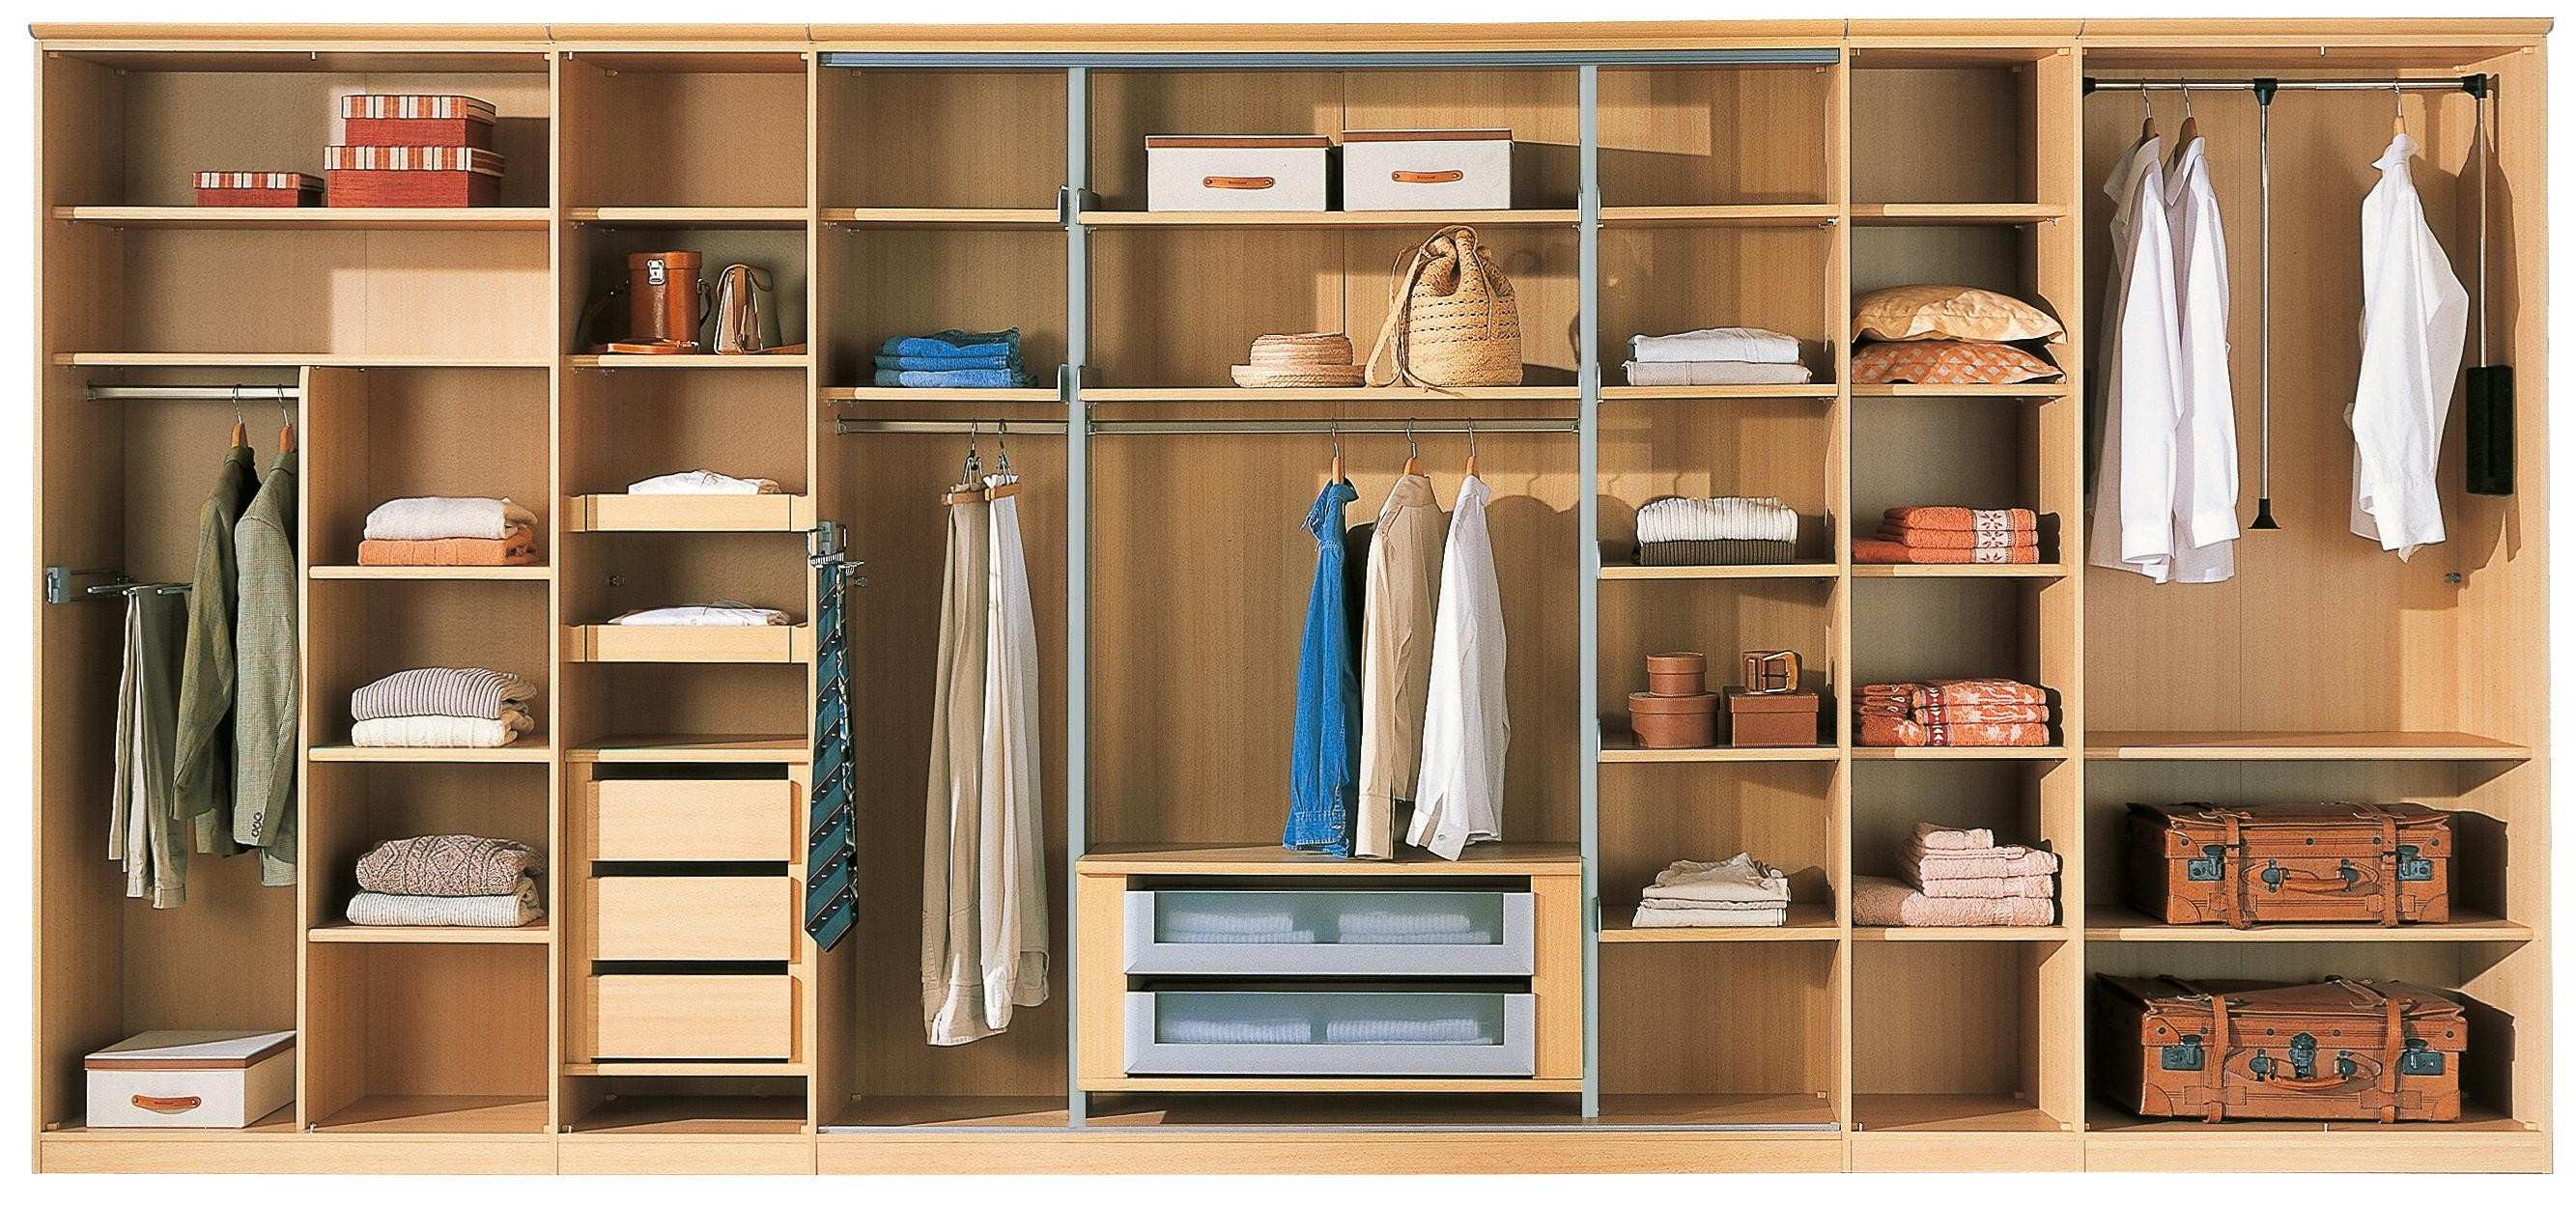 Ideas How To Make Hang Wardrobe Wood Portable Closet Http Www